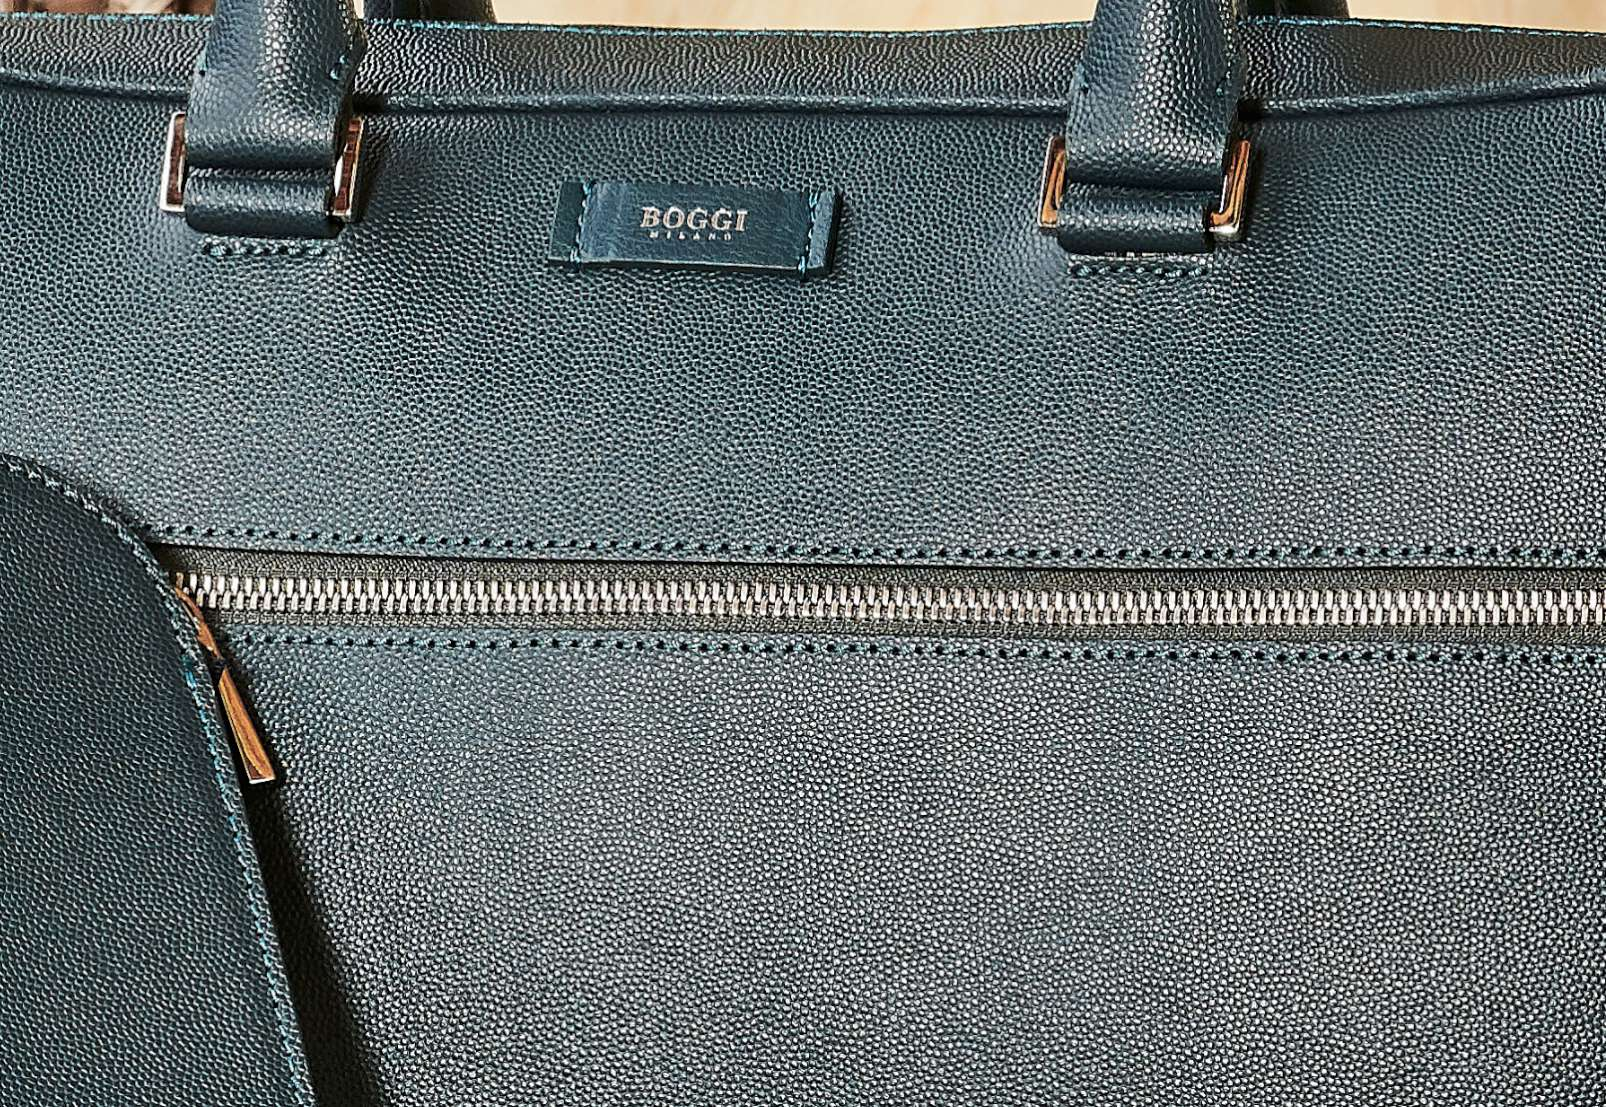 Boggi Milano Caviar leather single zip briefcase, A4 document holder, green, detail